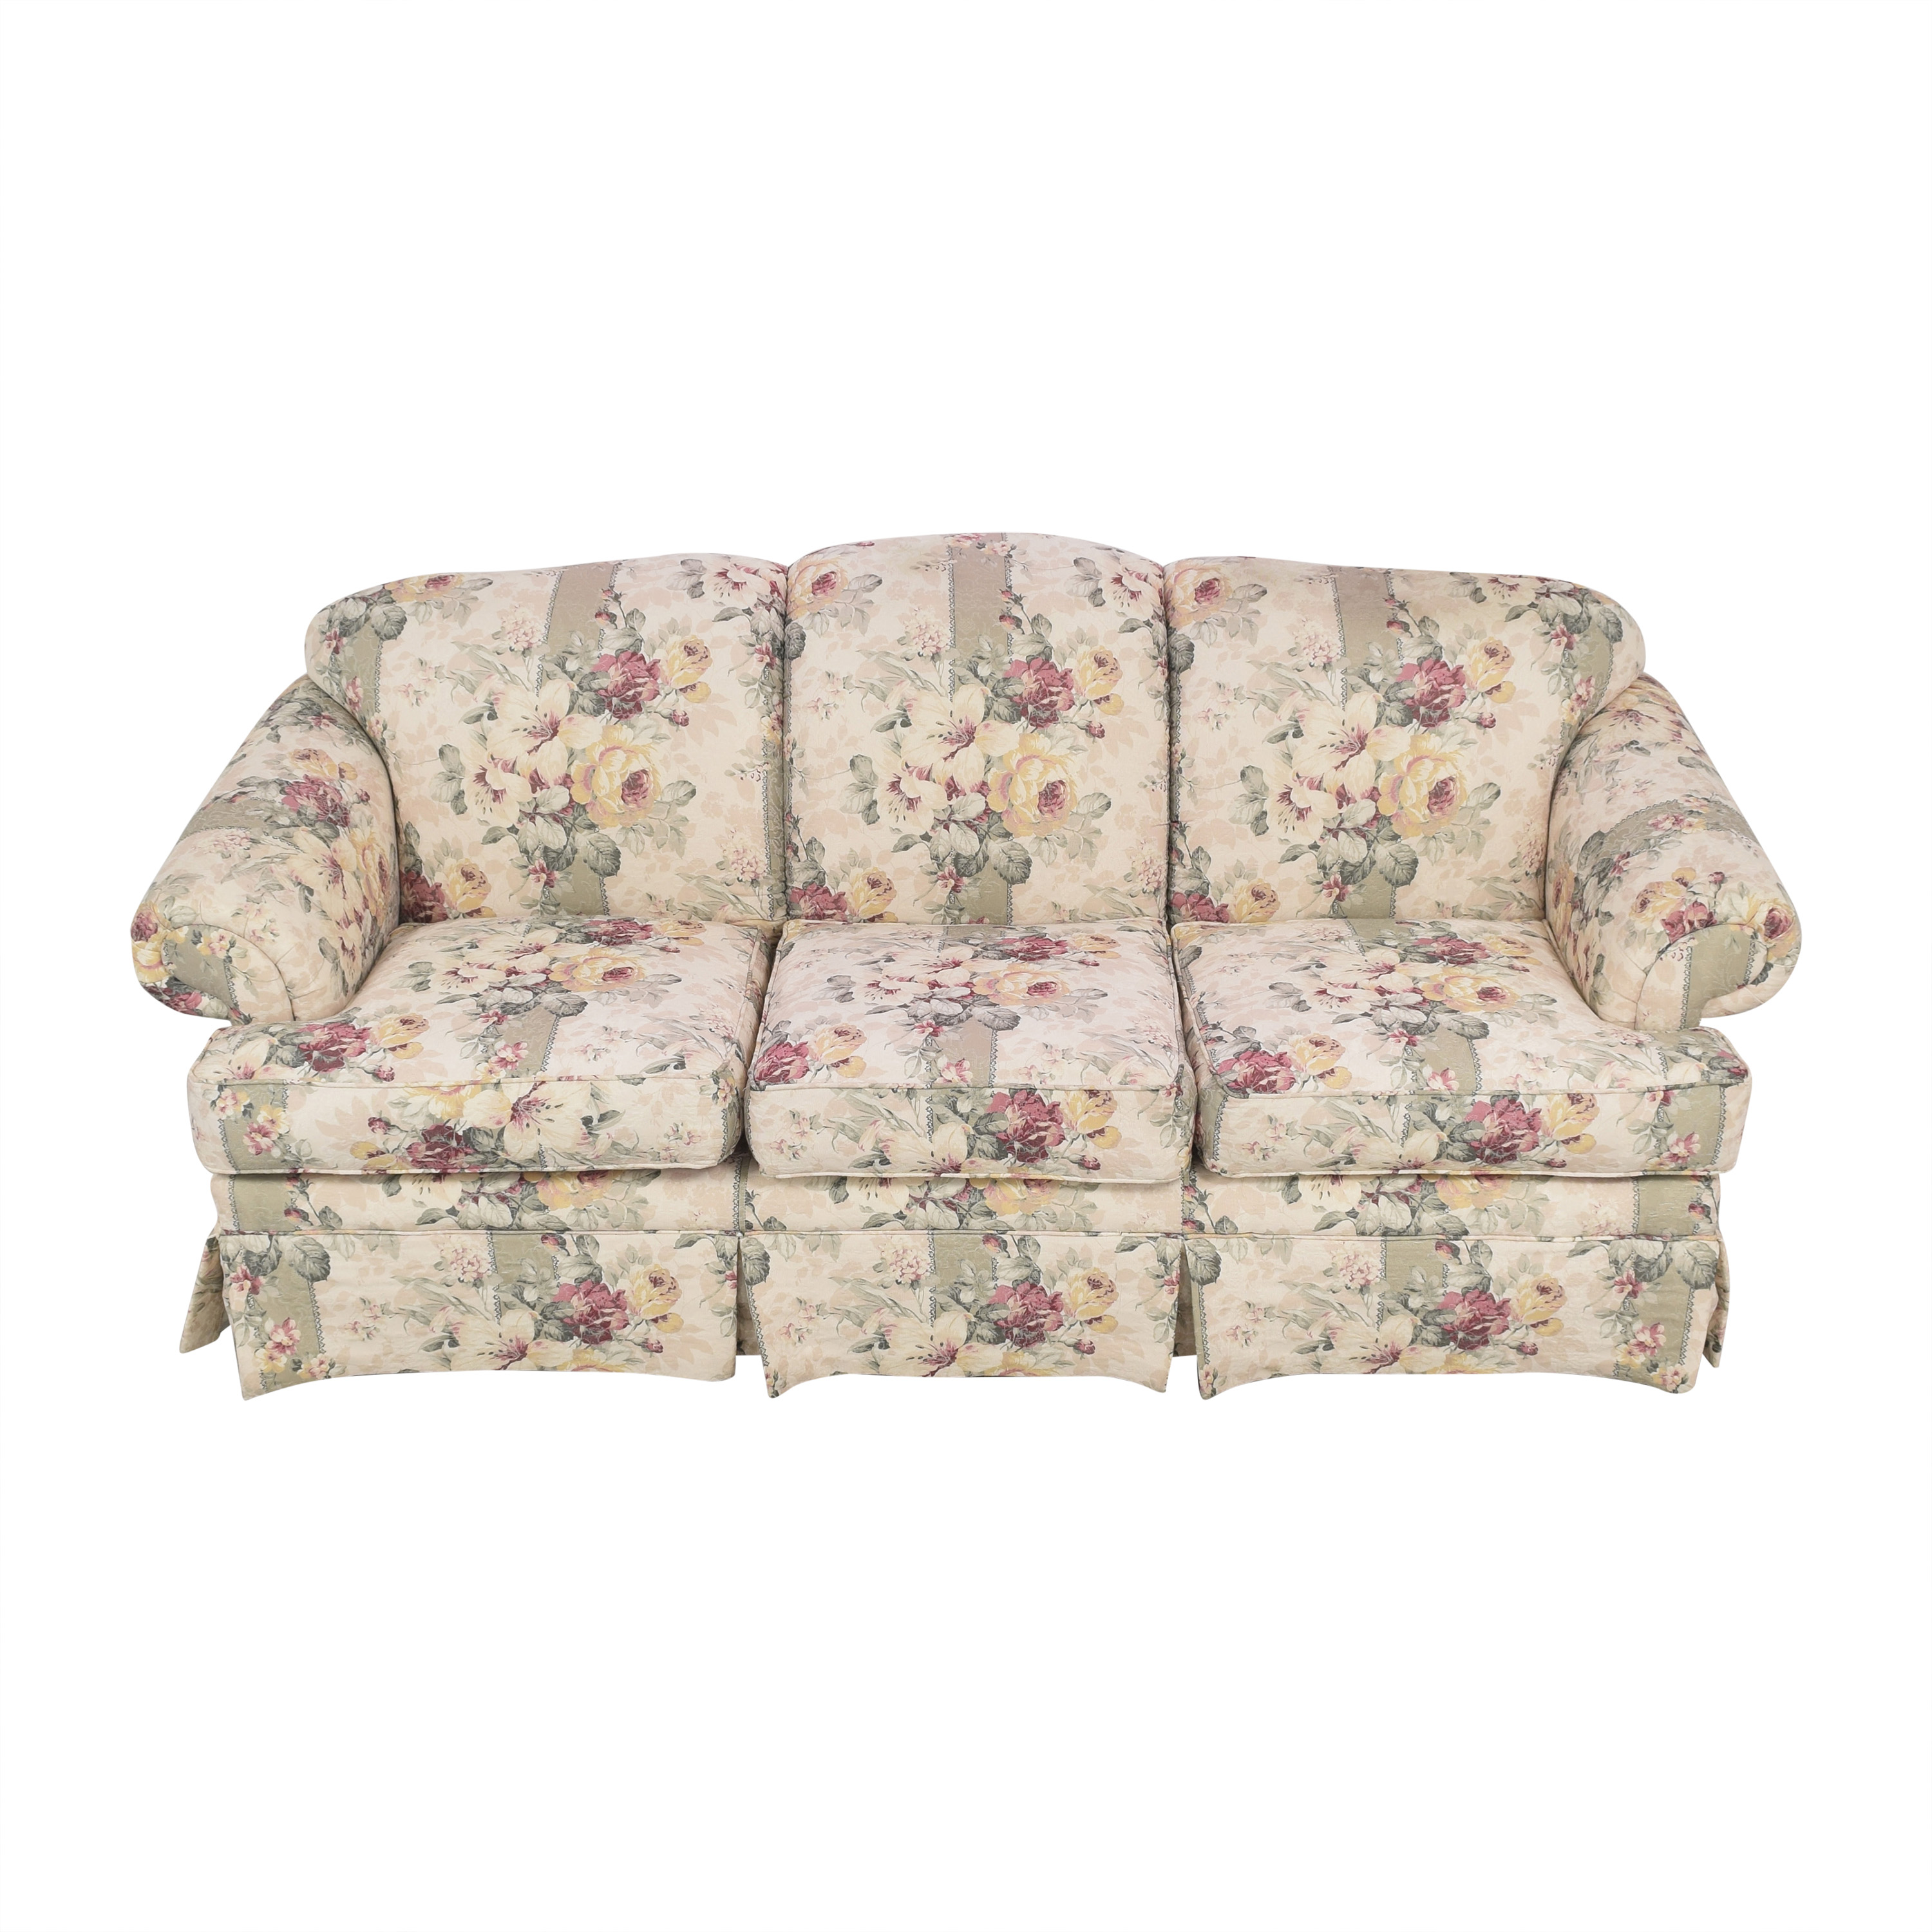 Rowe Furniture Rowe Furniture Floral Skirted Sofa nj